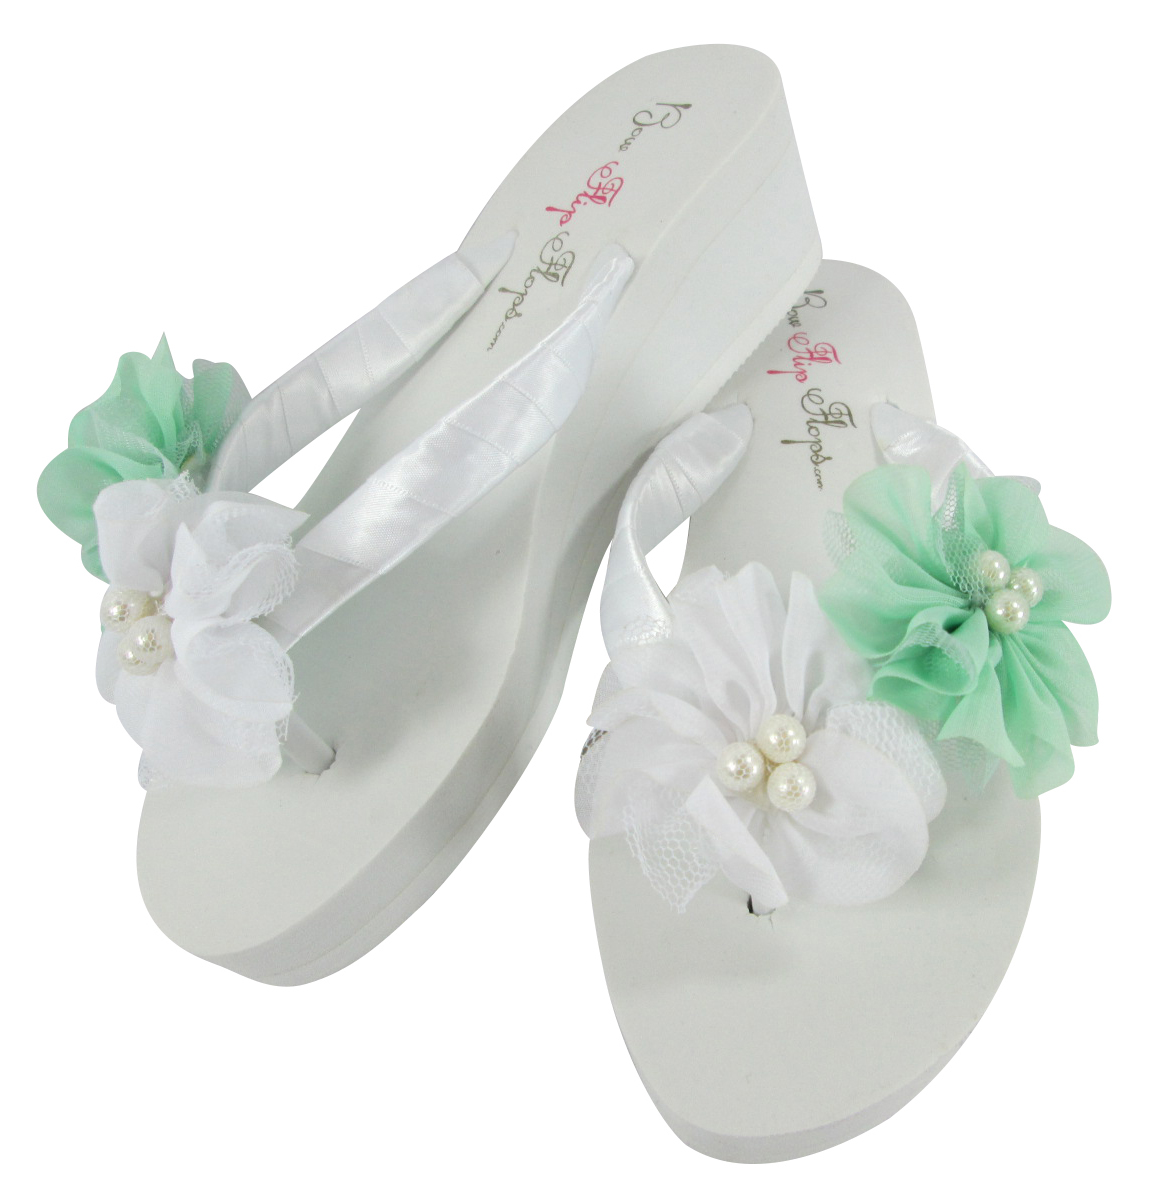 Flower Wedding Flip Flops For The Bride Bridesmaids